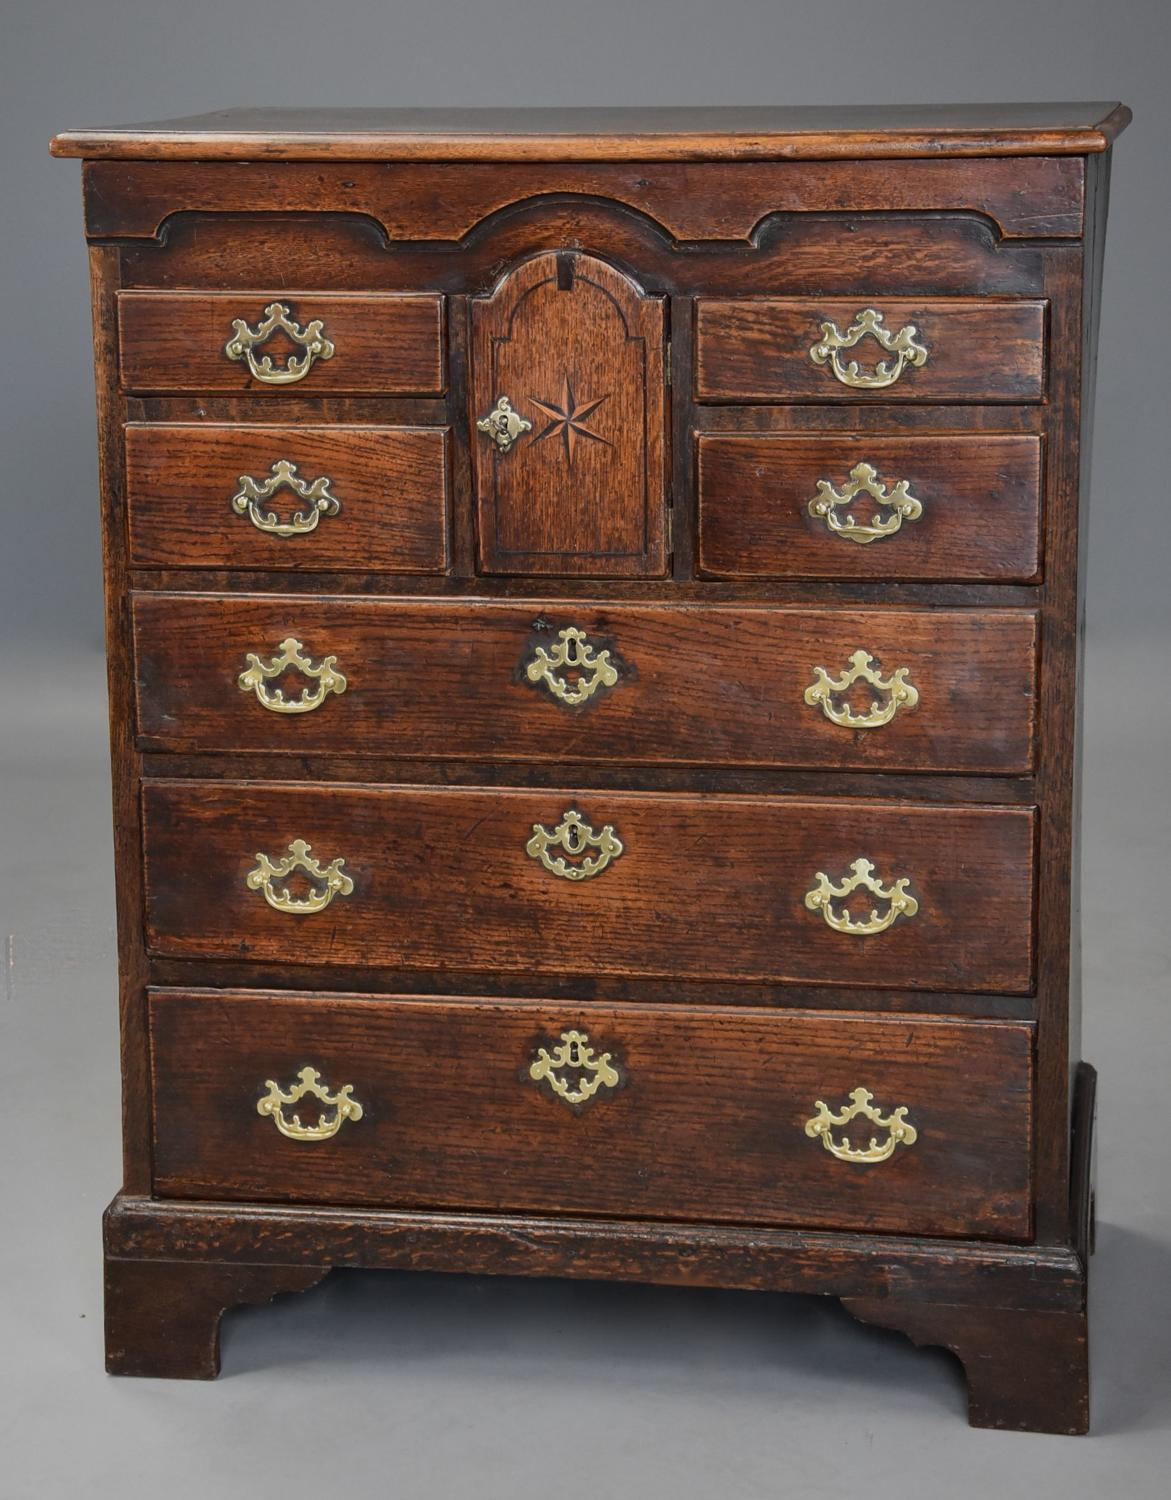 Superb 18th century oak Norfolk chest with excellent patina